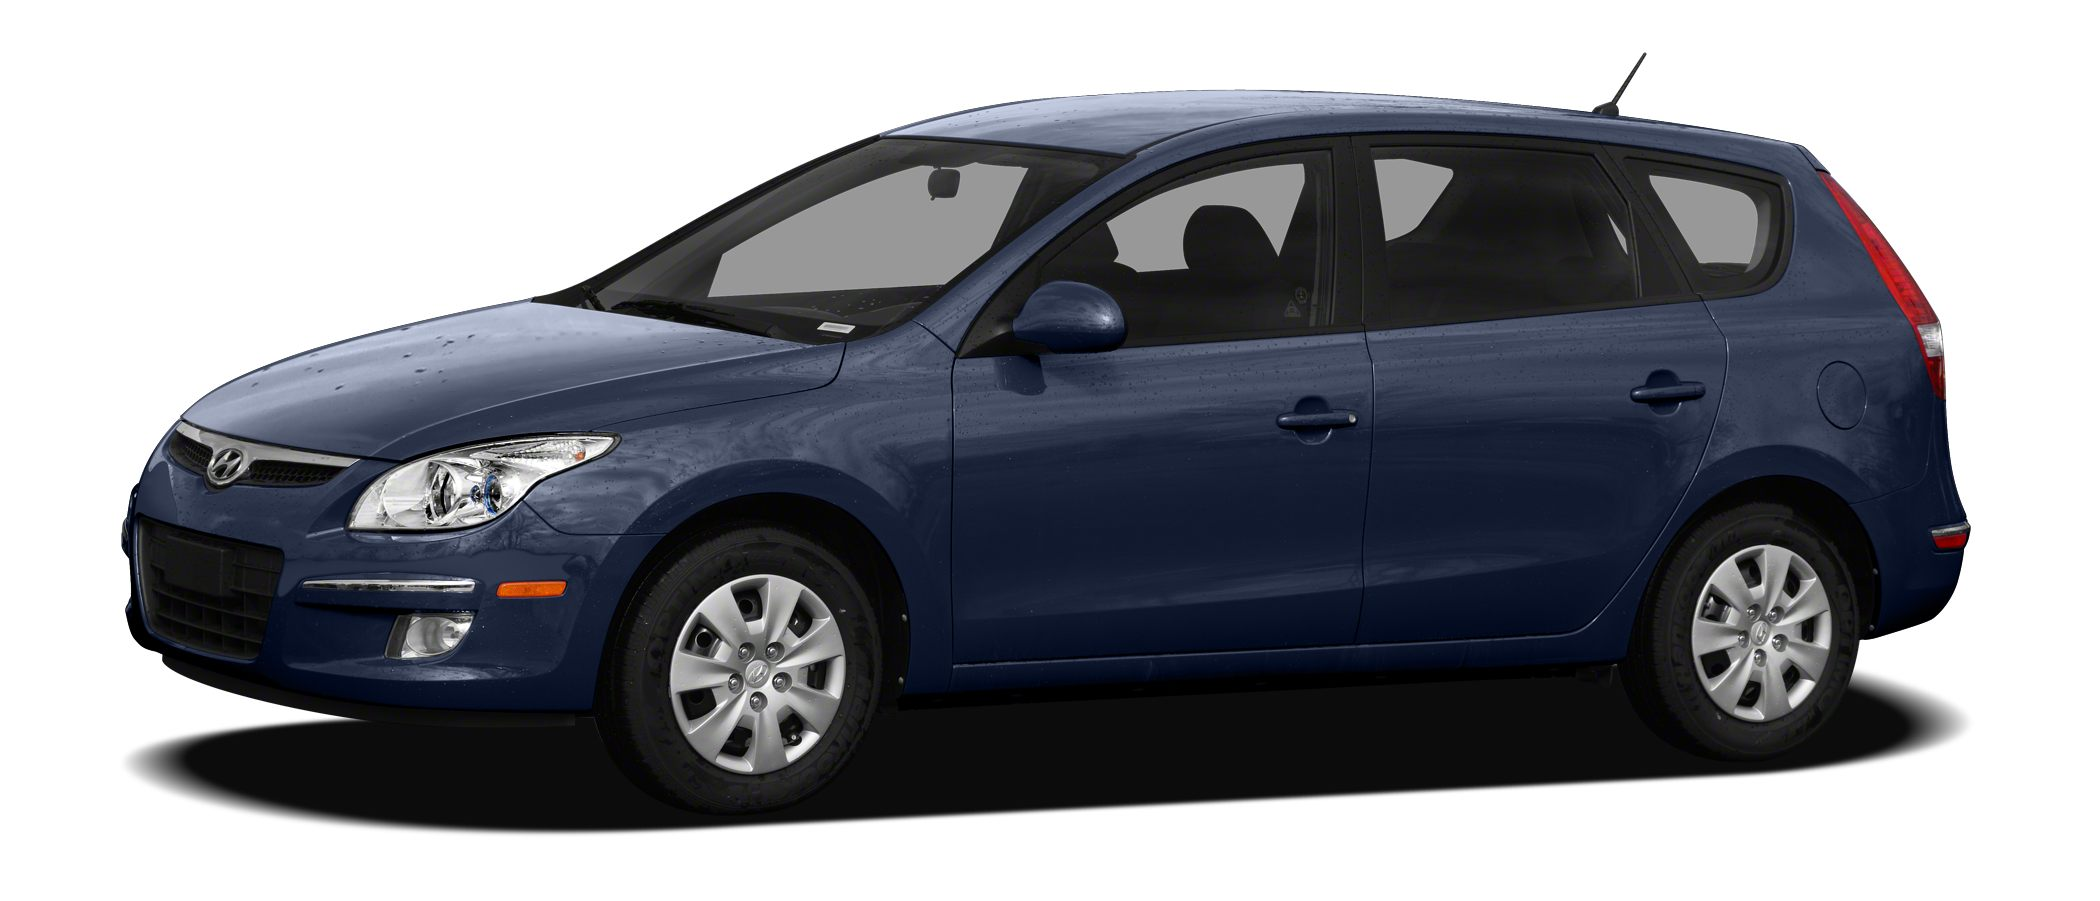 2012 Hyundai Elantra Touring GLS Prices do not include additional fees and costs of closing includ